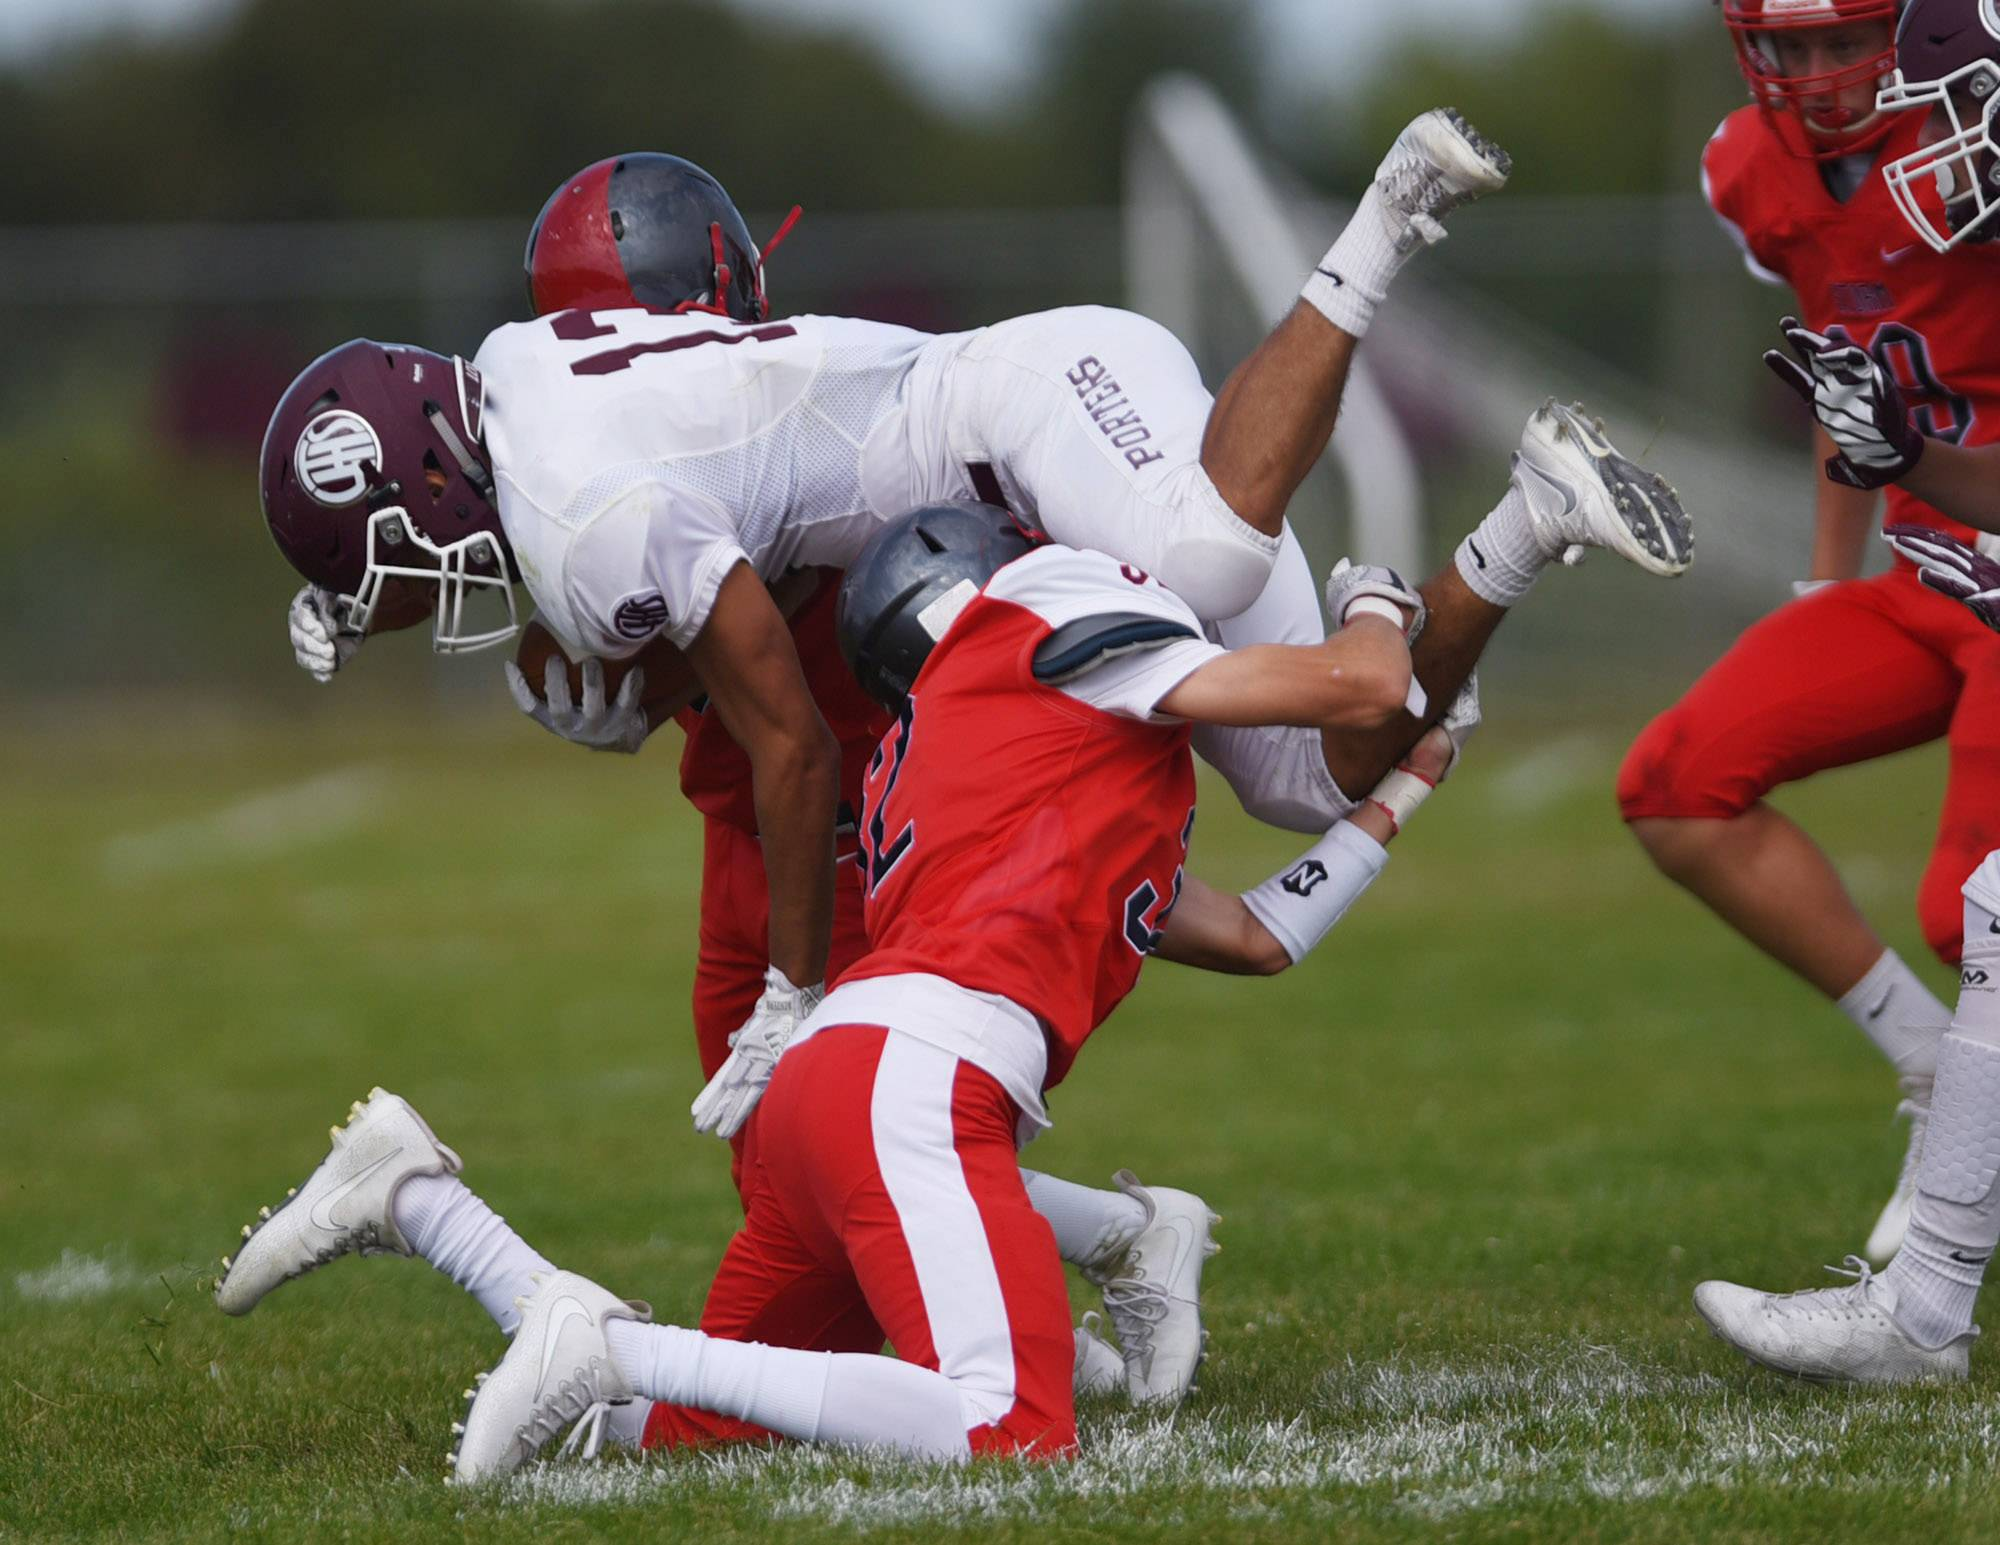 South Elgin's Anthony Zabran makes an open-field tackle against Lockport's Nicholas Ward Saturday in South Elgin.